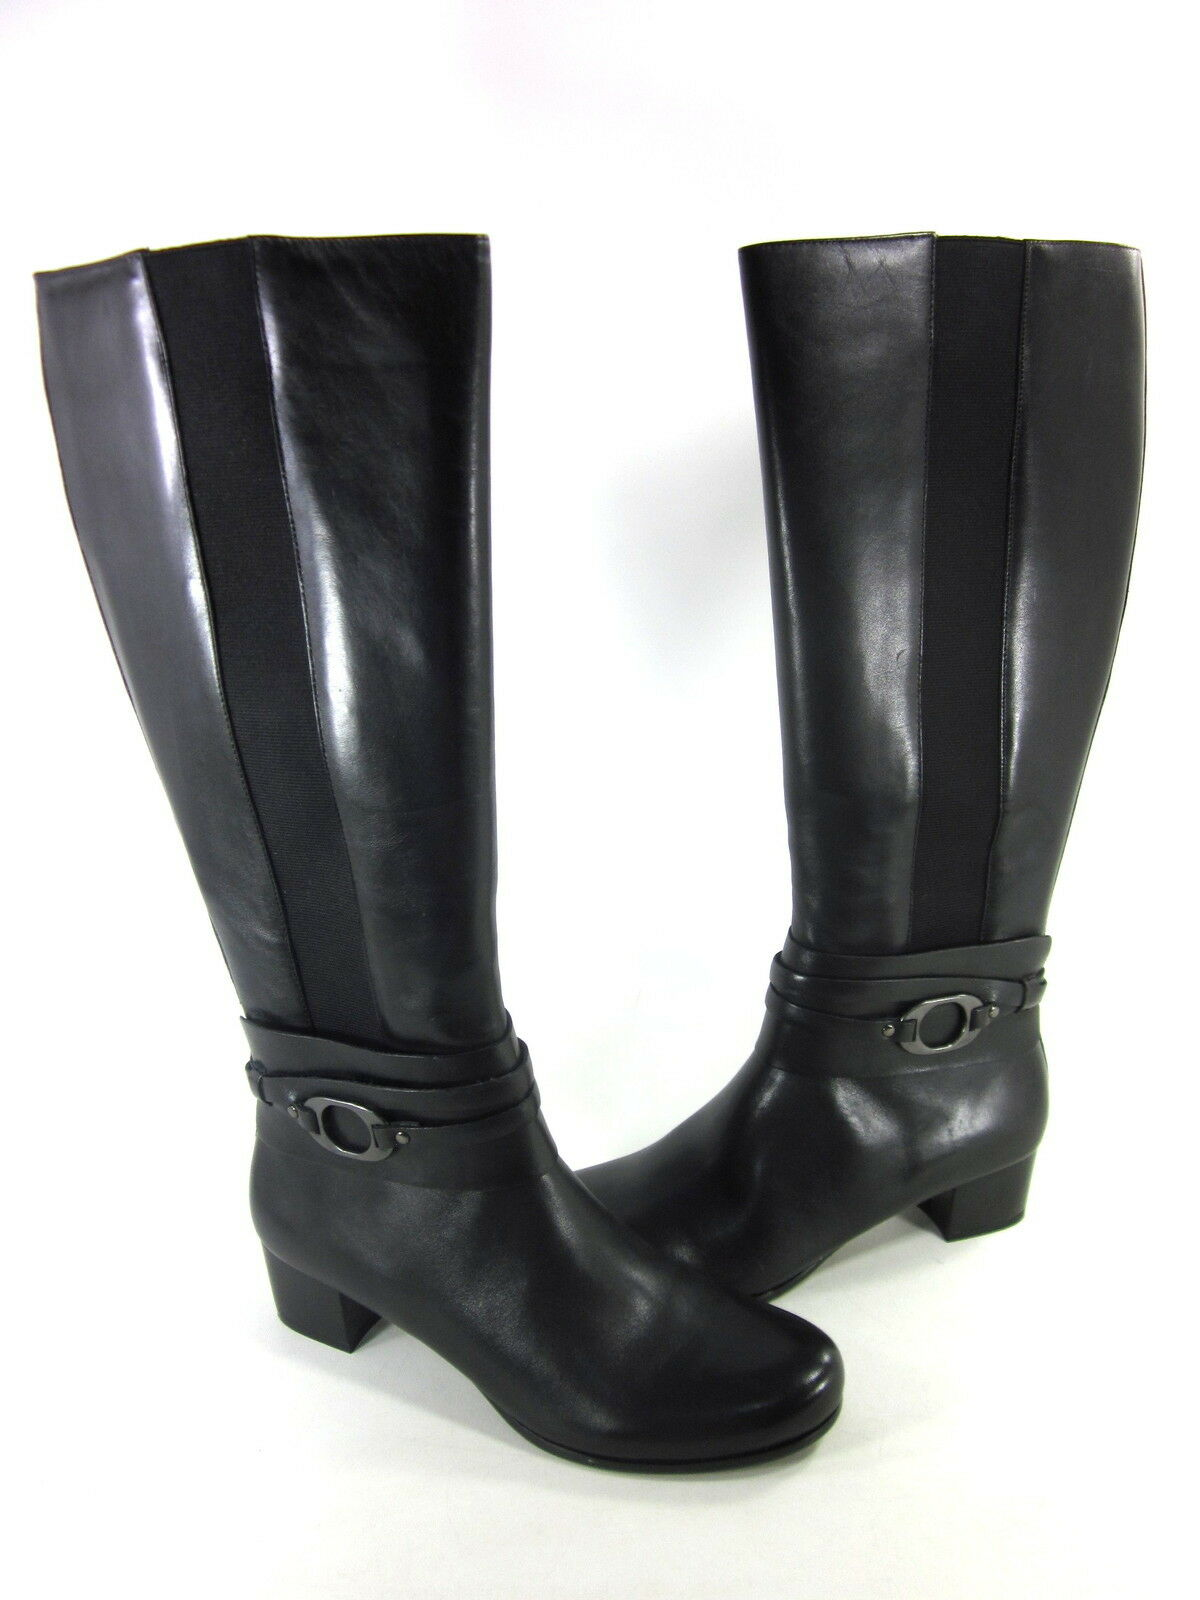 TROTTERS WOMEN'S AMORE COMFORT US RIDING BOOT LEATHER BLACK US COMFORT SIZE 9.5 NARROW c8cc45